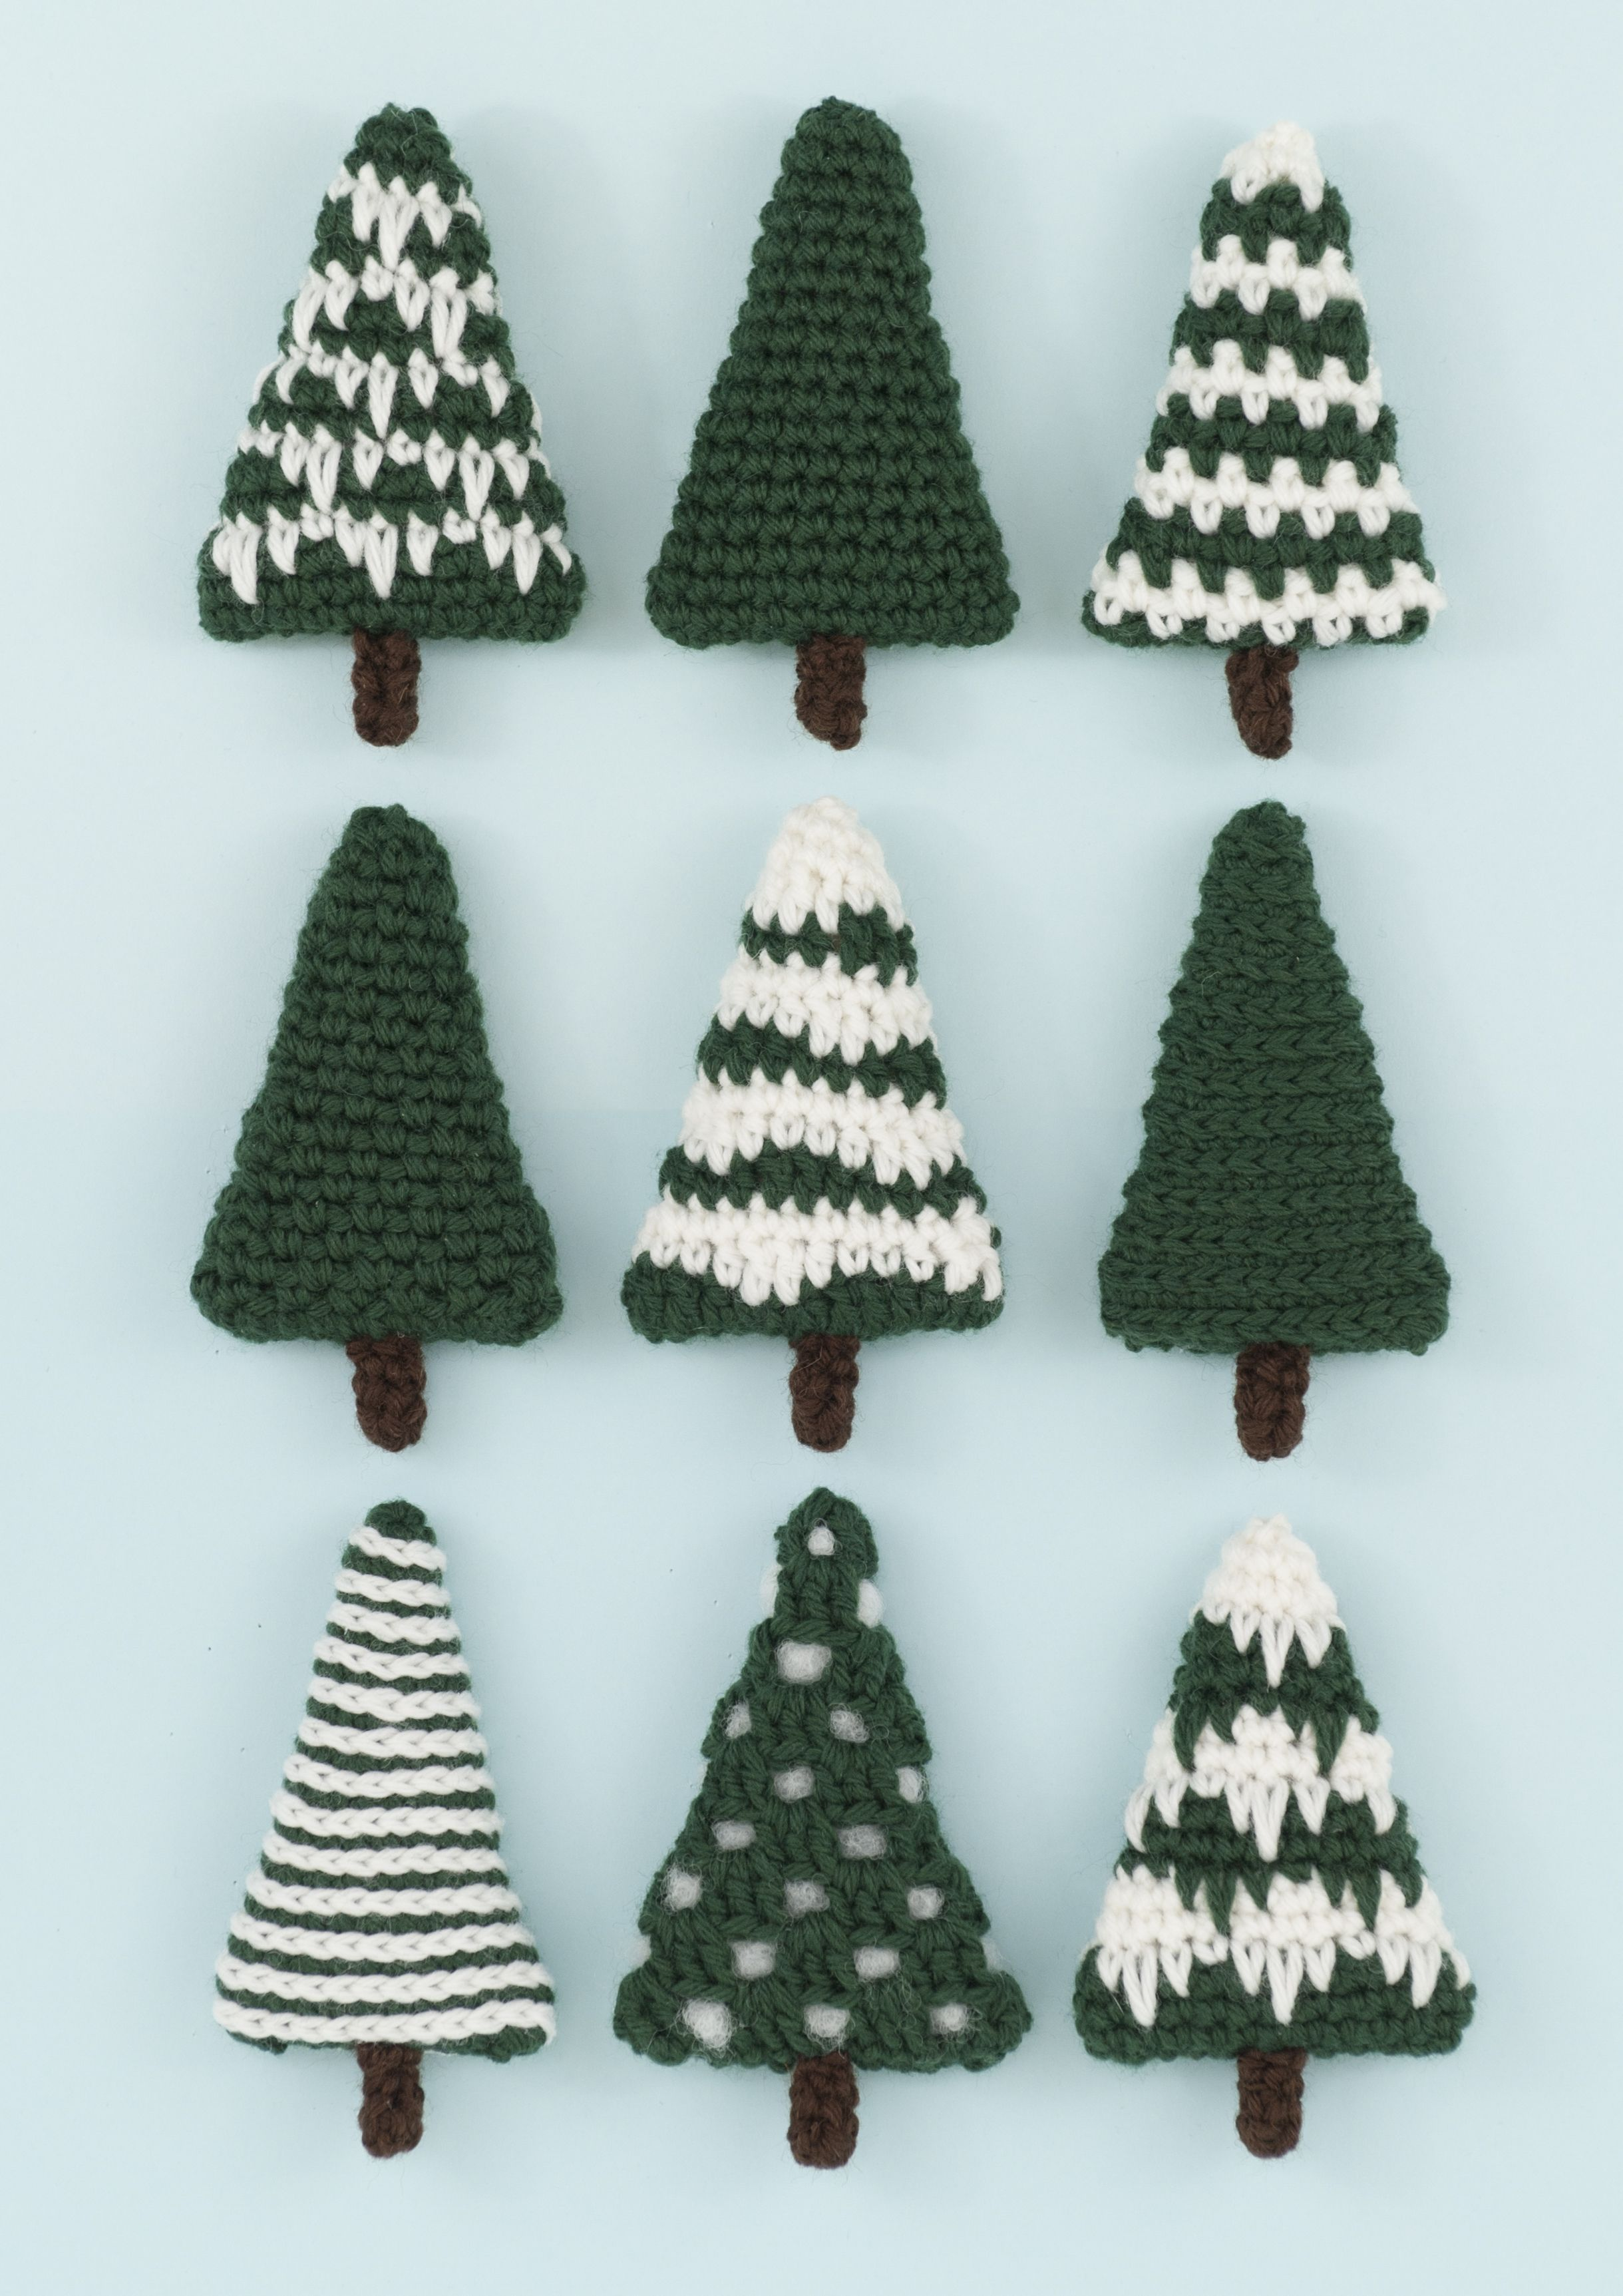 Christmas Trees Crochet Pattern By Squibblybups Crochet Christmas Trees Pattern Christmas Crochet Patterns Christmas Crochet